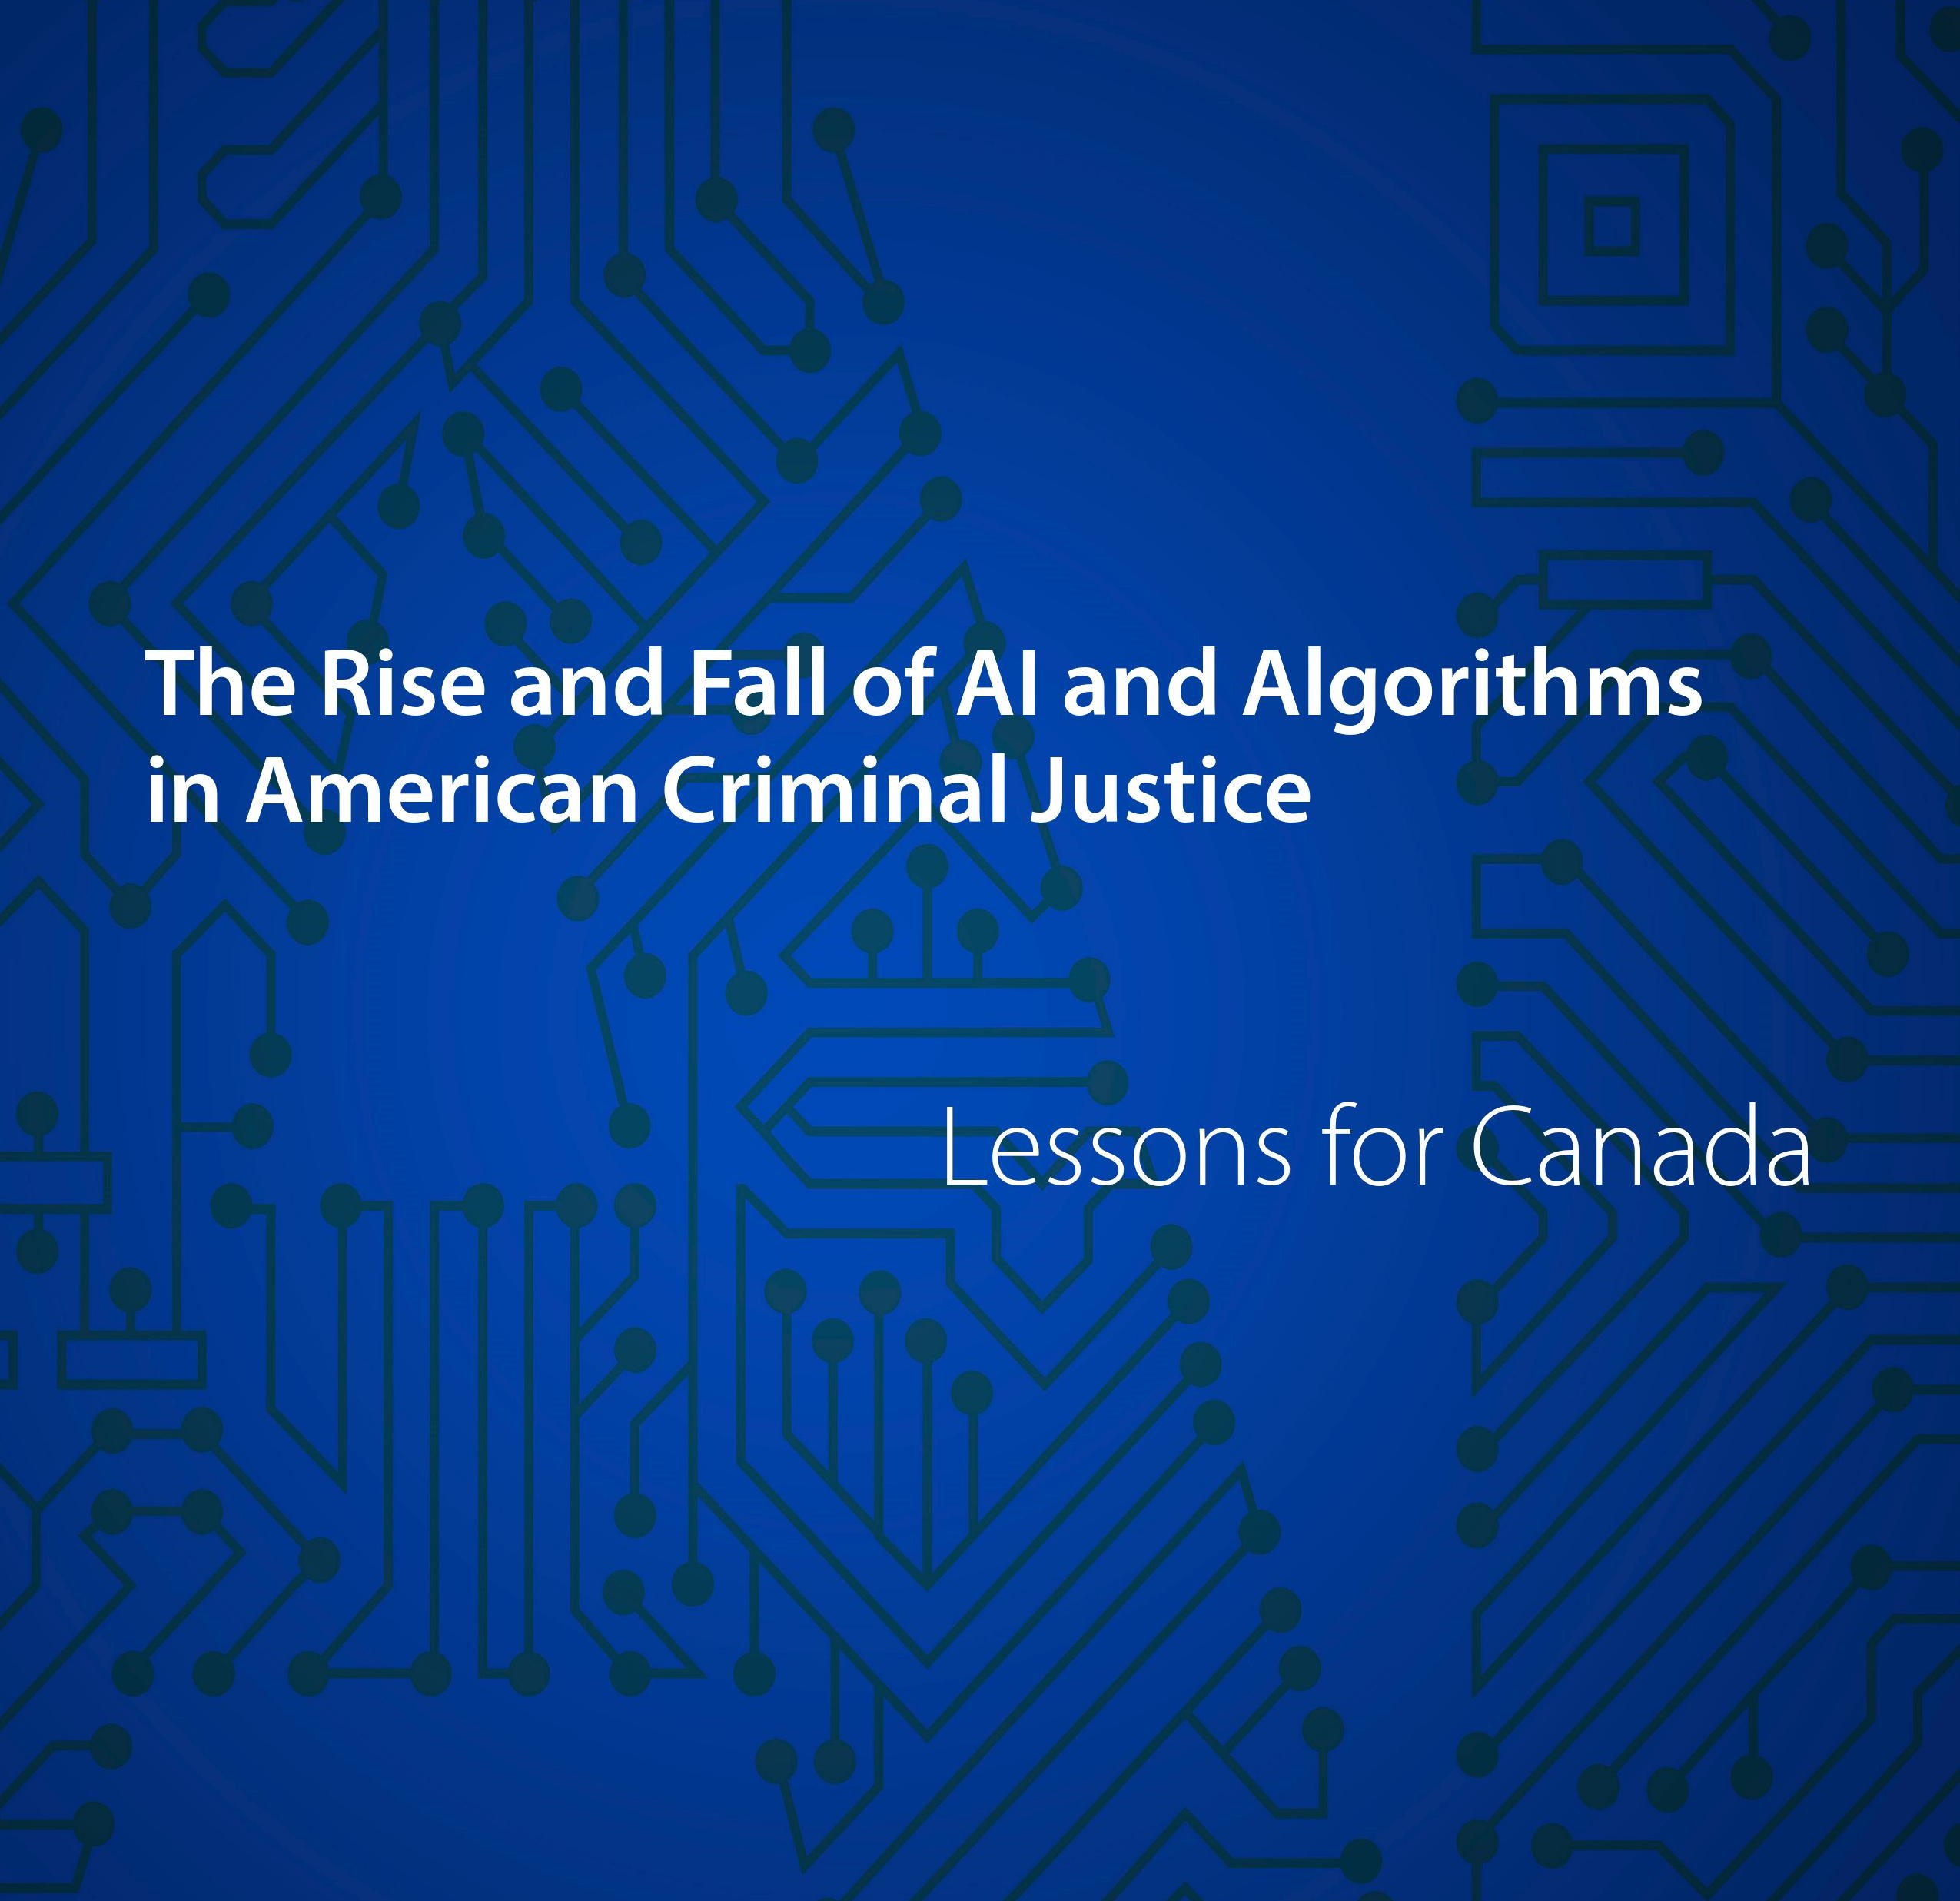 """Blue background image which has AI on it. It also has a title written on it """"The Rise and Fall of Algorithms in American Criminal Justice: Lessons for Canada""""."""